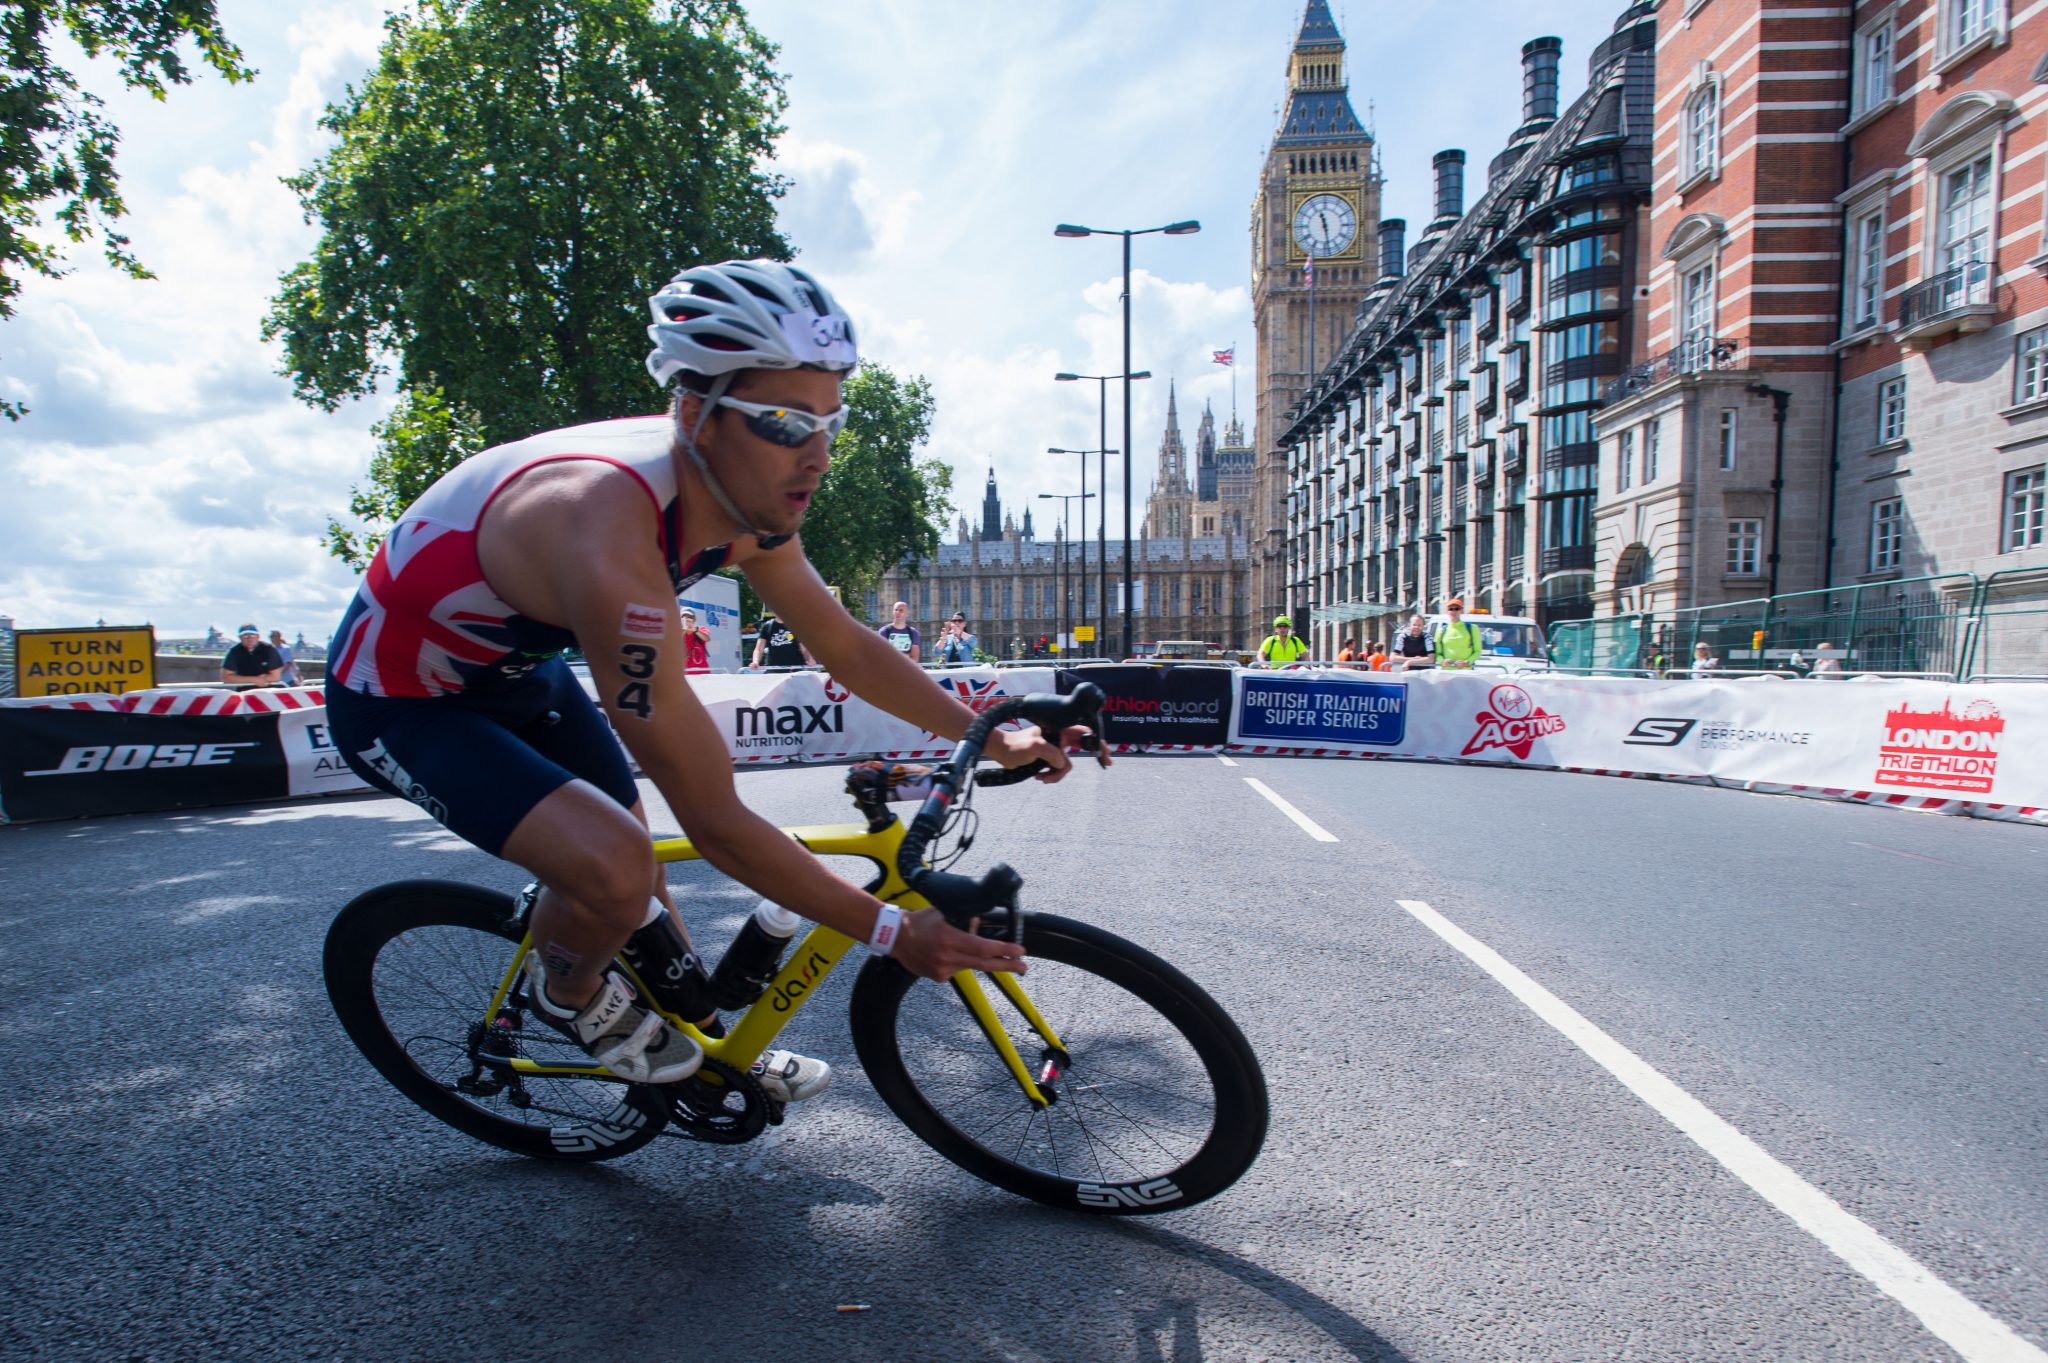 London Triathlon 2014